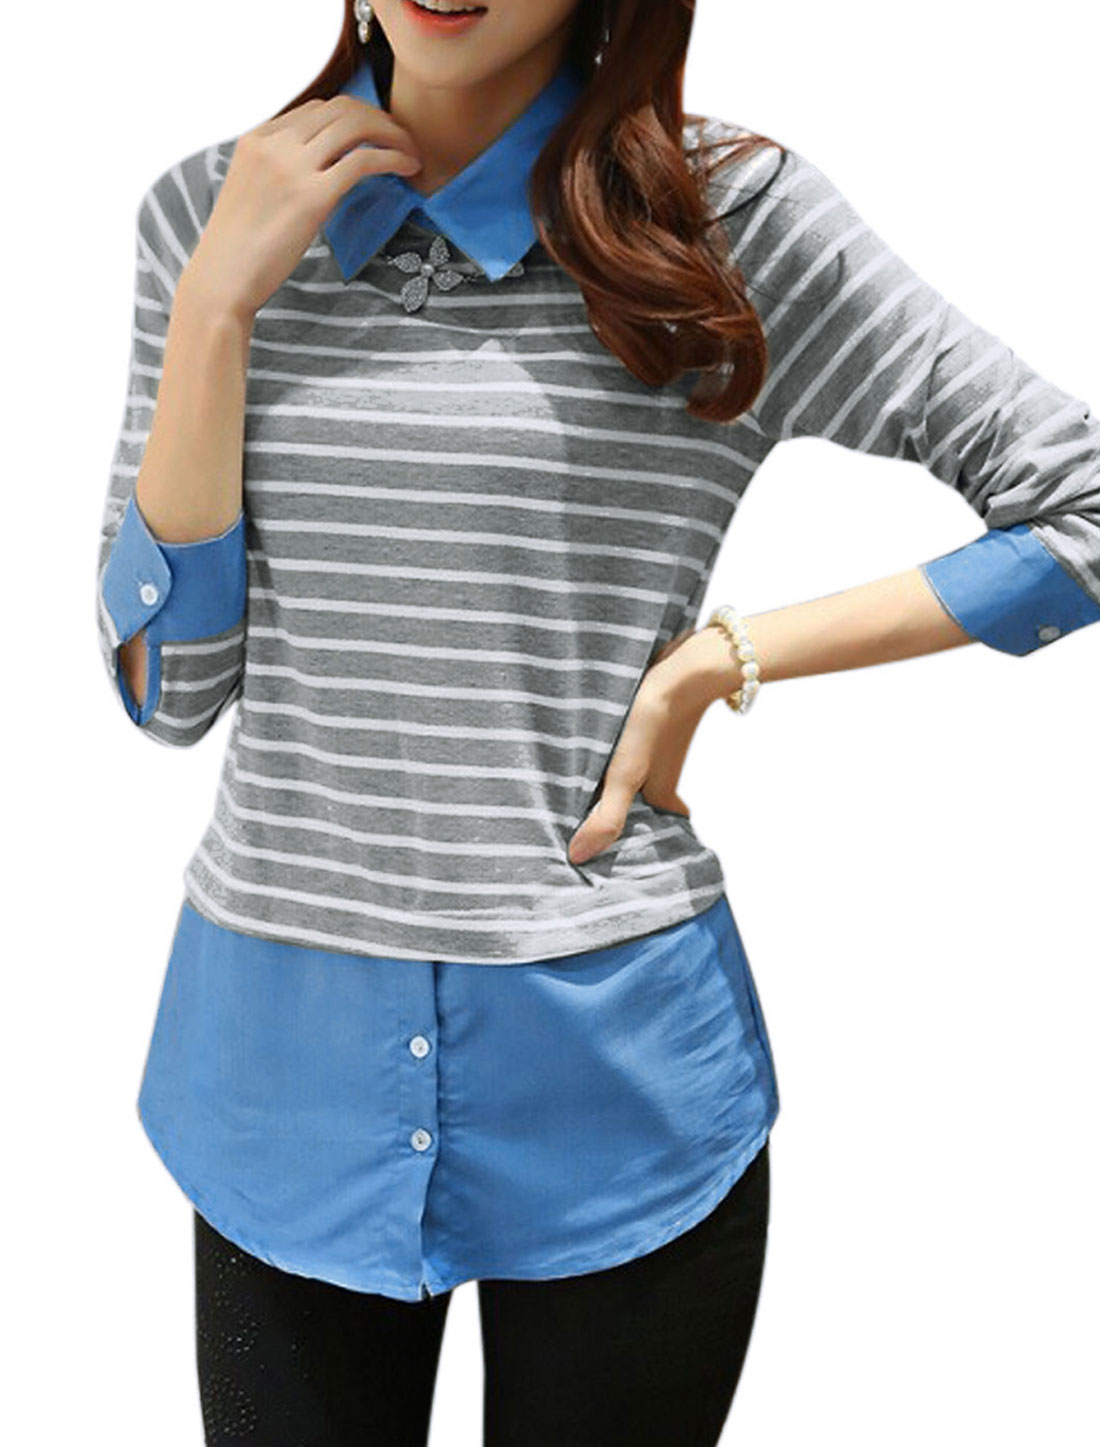 Women Turndown Collar Layered Shirts Stripes Panel Trendy Shirt Light Gray XS